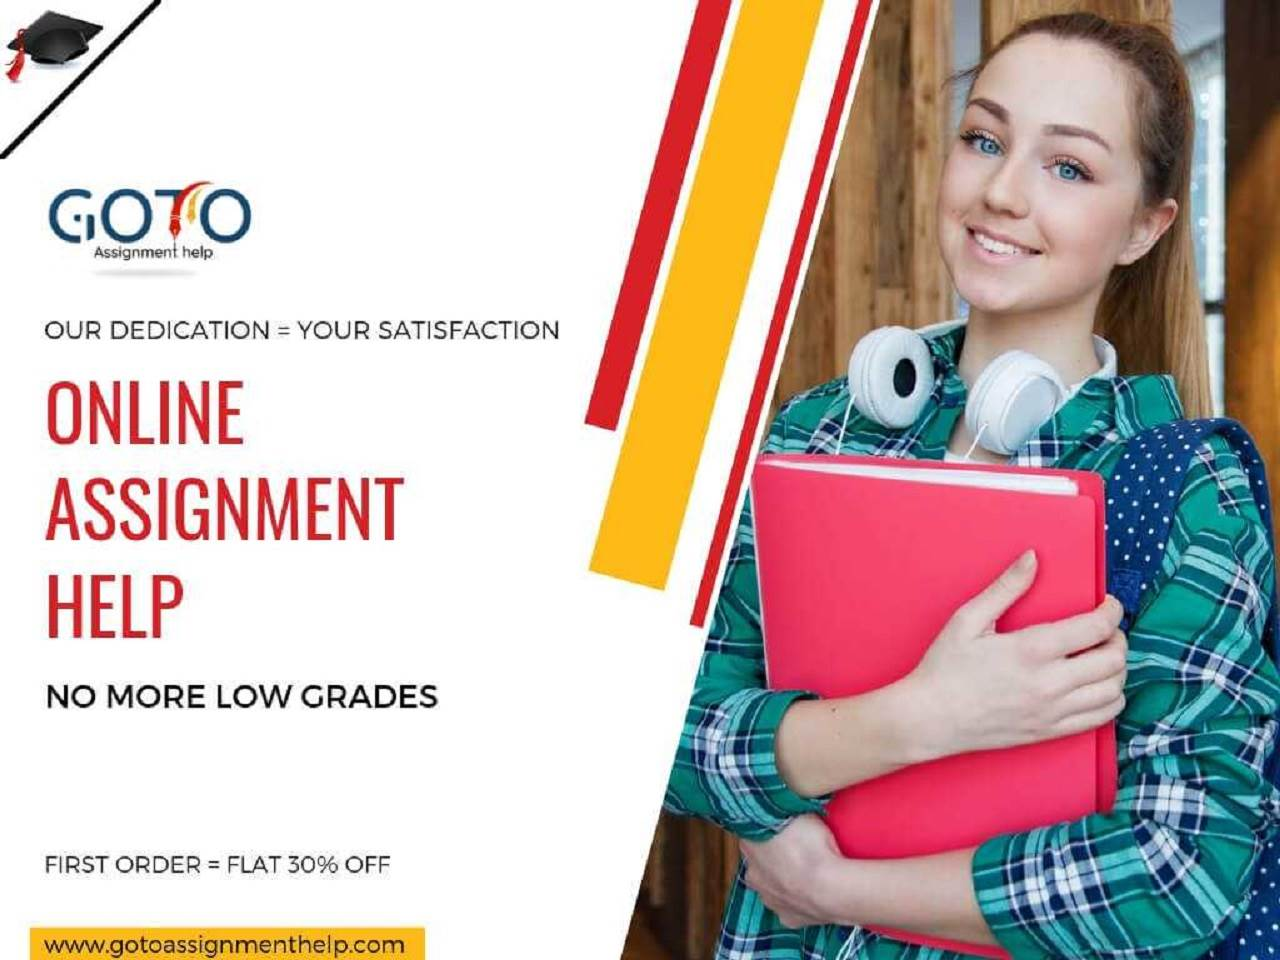 Skill Development For Student Through Assignment Help Online